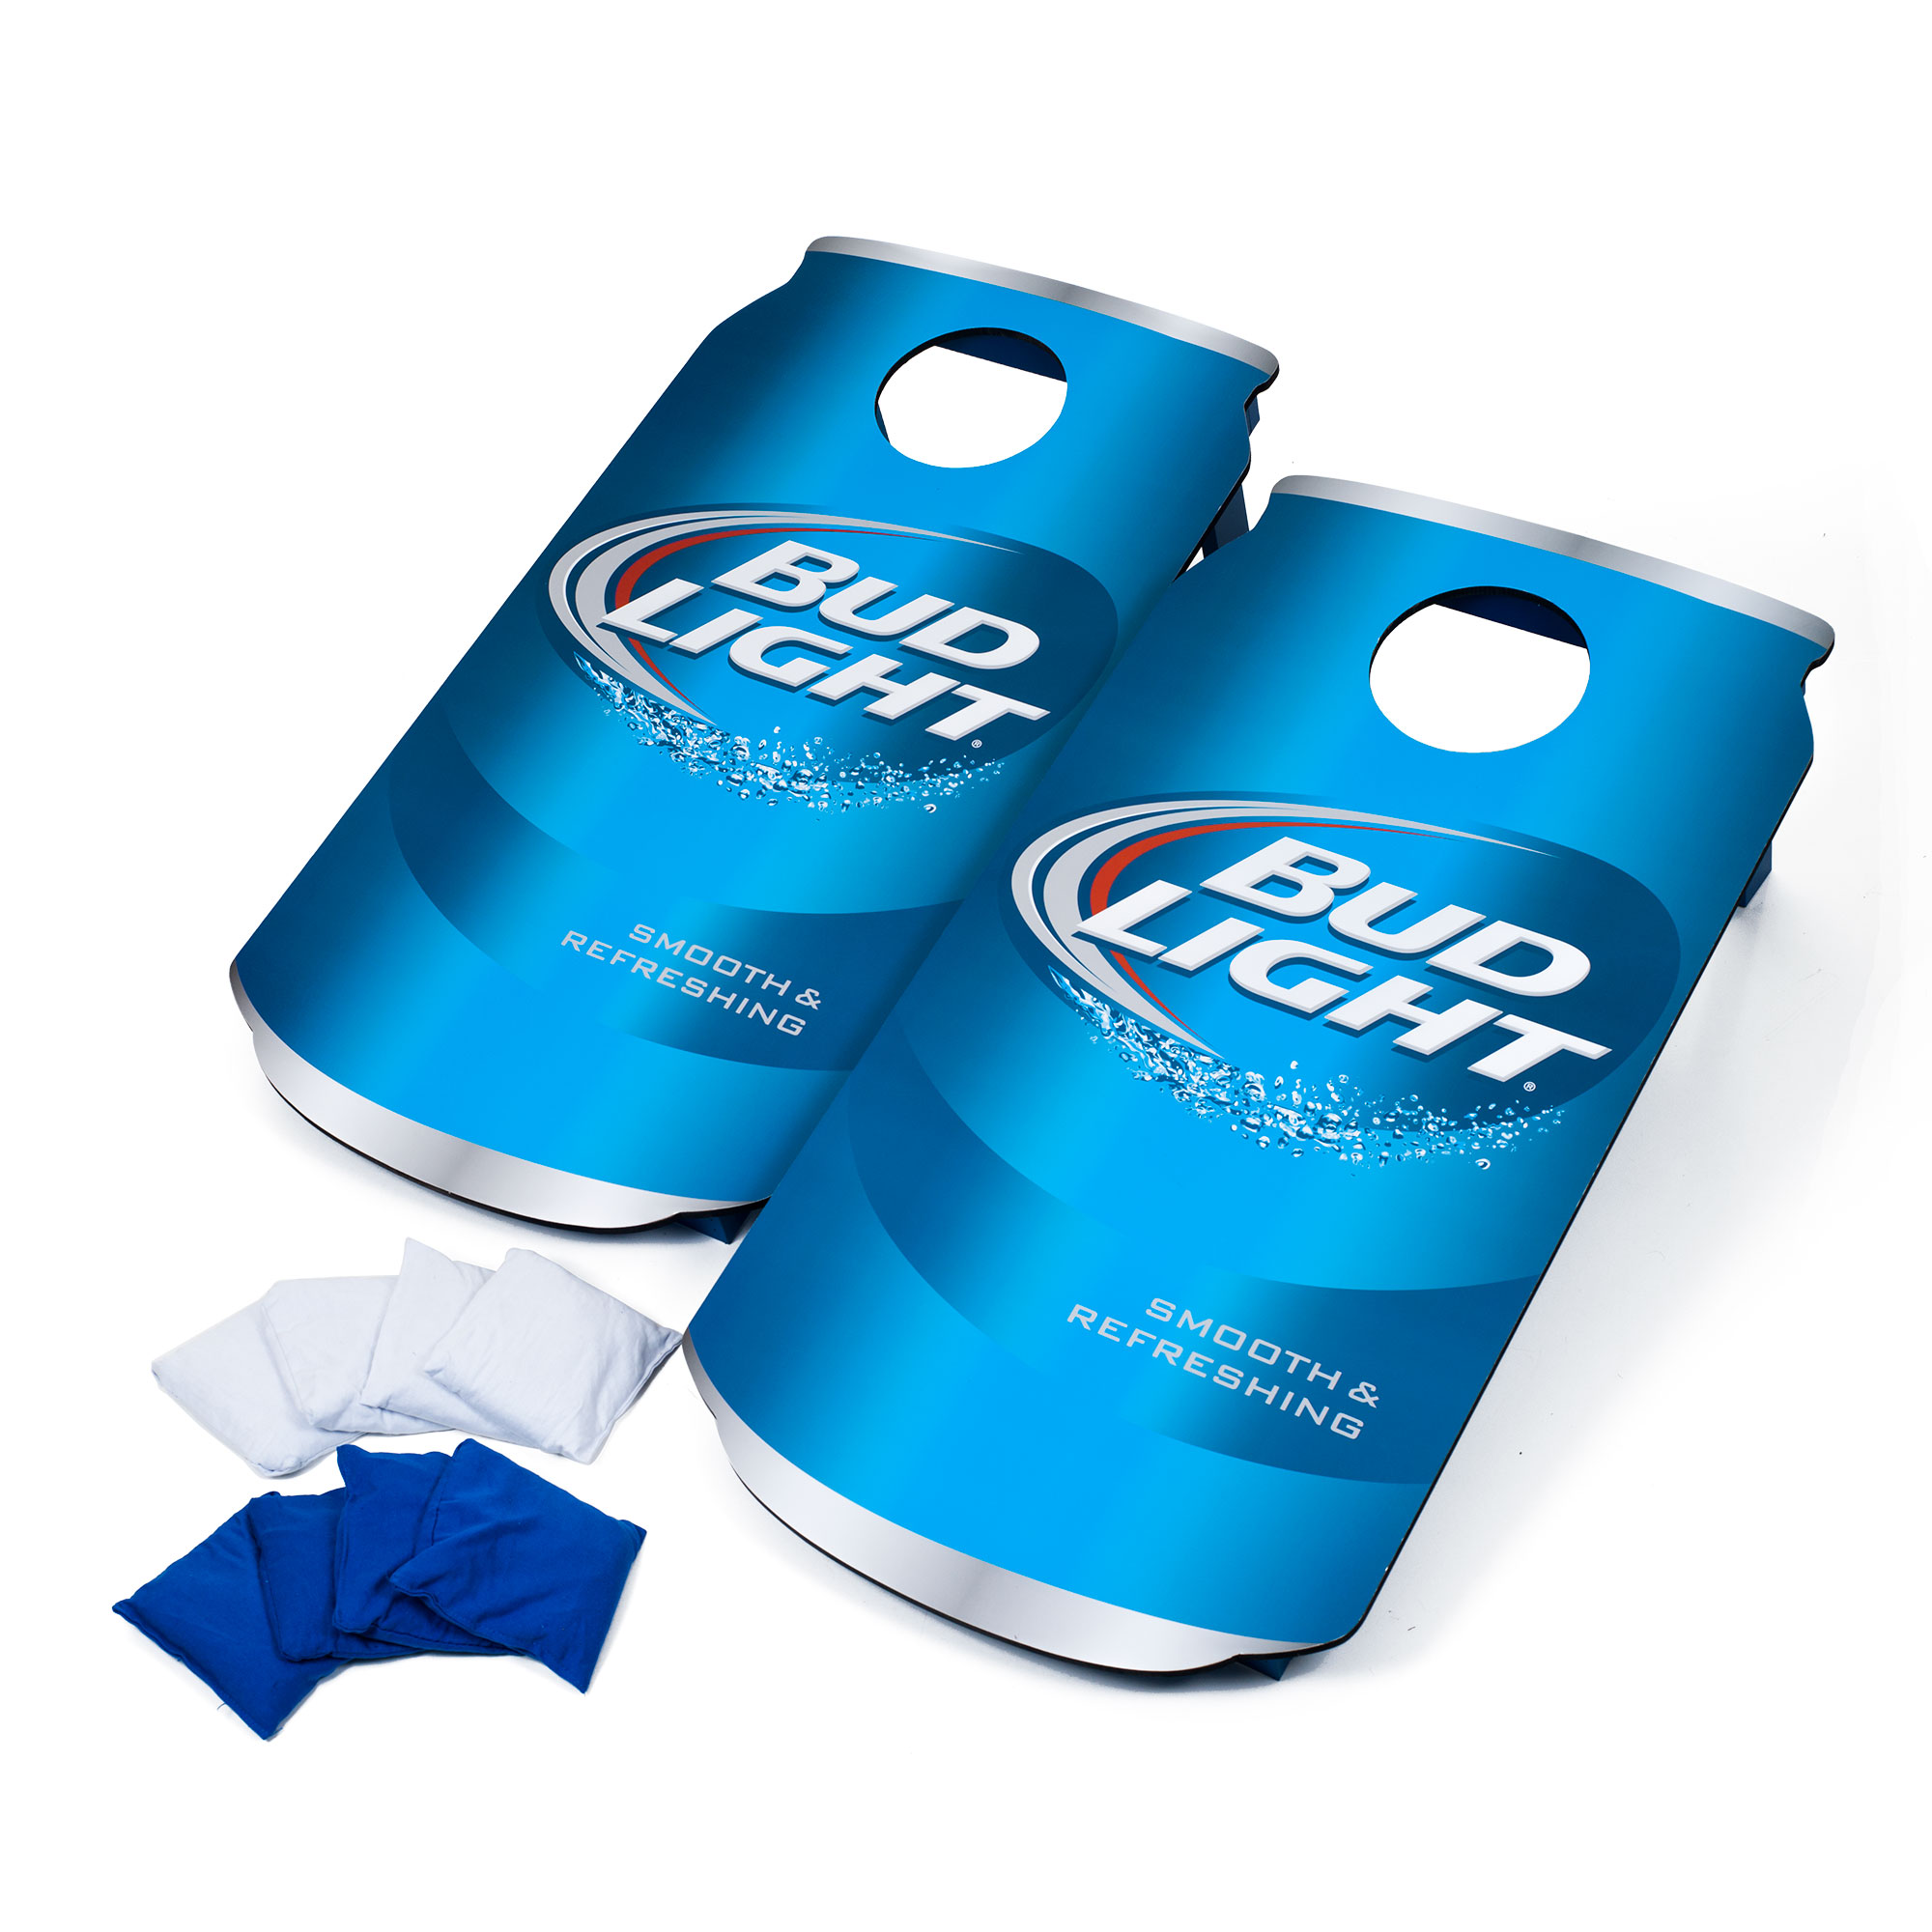 Officially Licensed Cornhole Sets (Budweiser, Bud Light, Coca-Cola, Corona, Miller Lite) by Trademark Global LLC